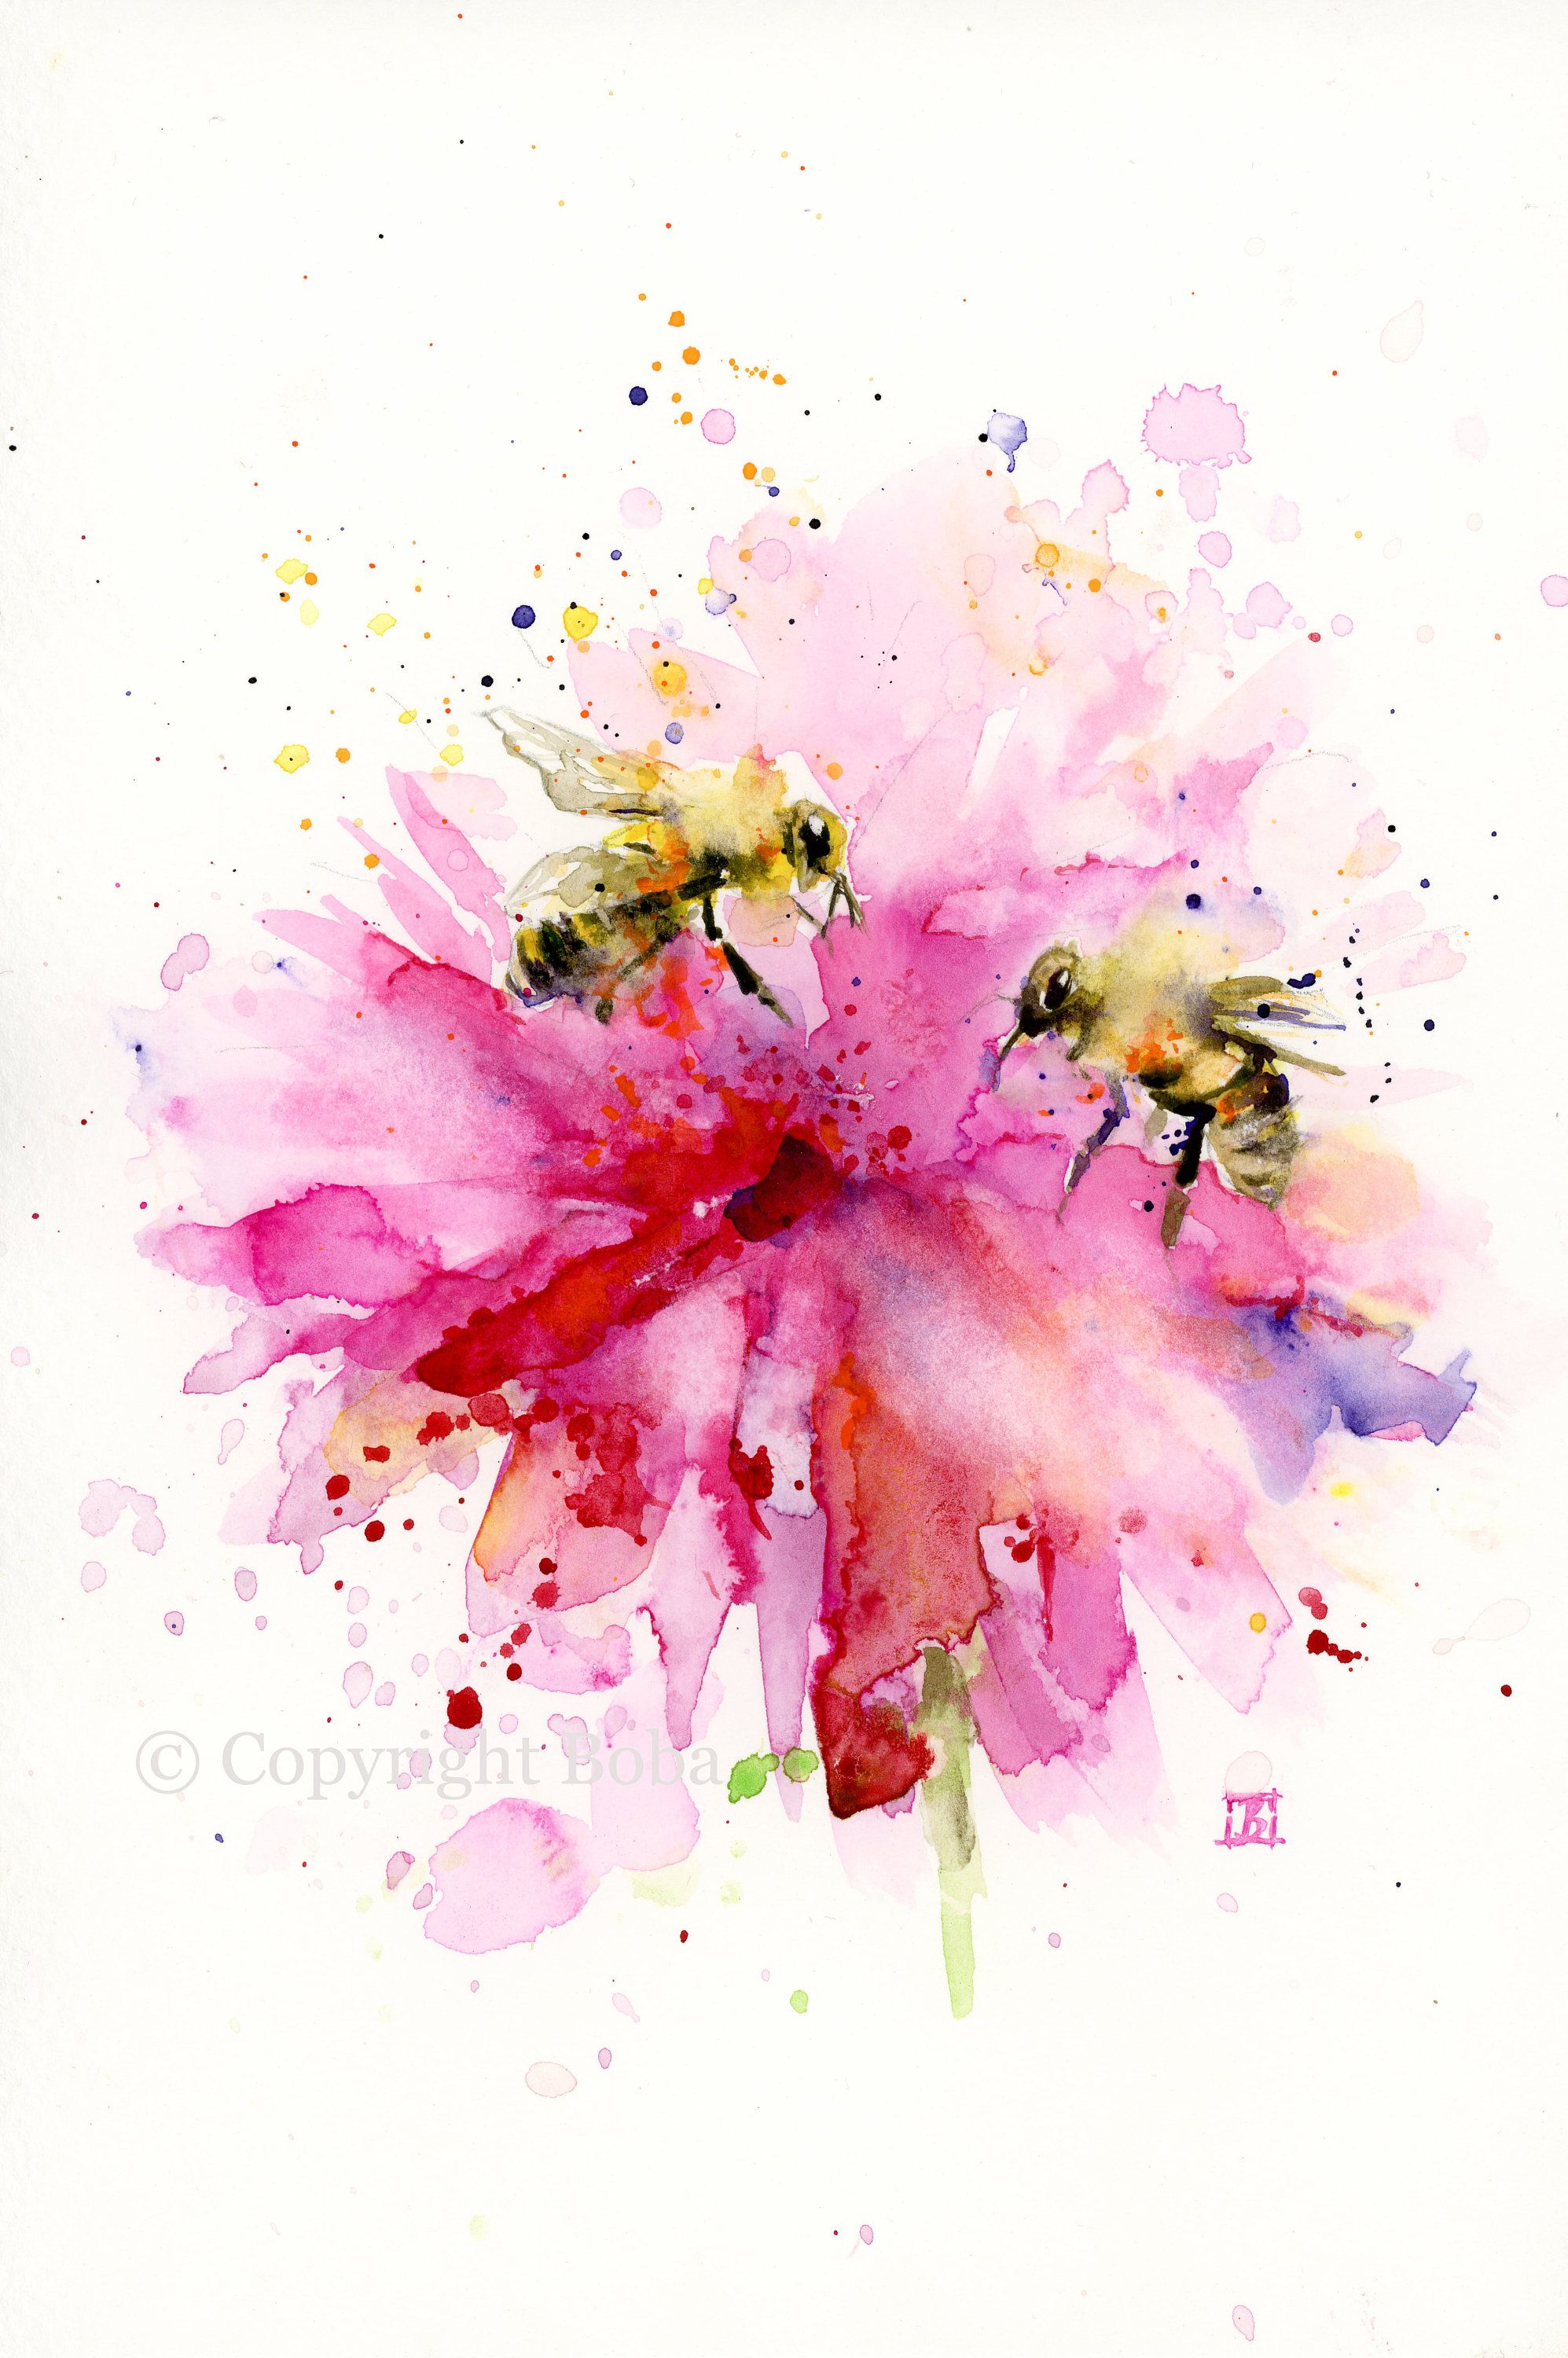 Bees On The Flower Original Watercolor Painting Bee Art Pink